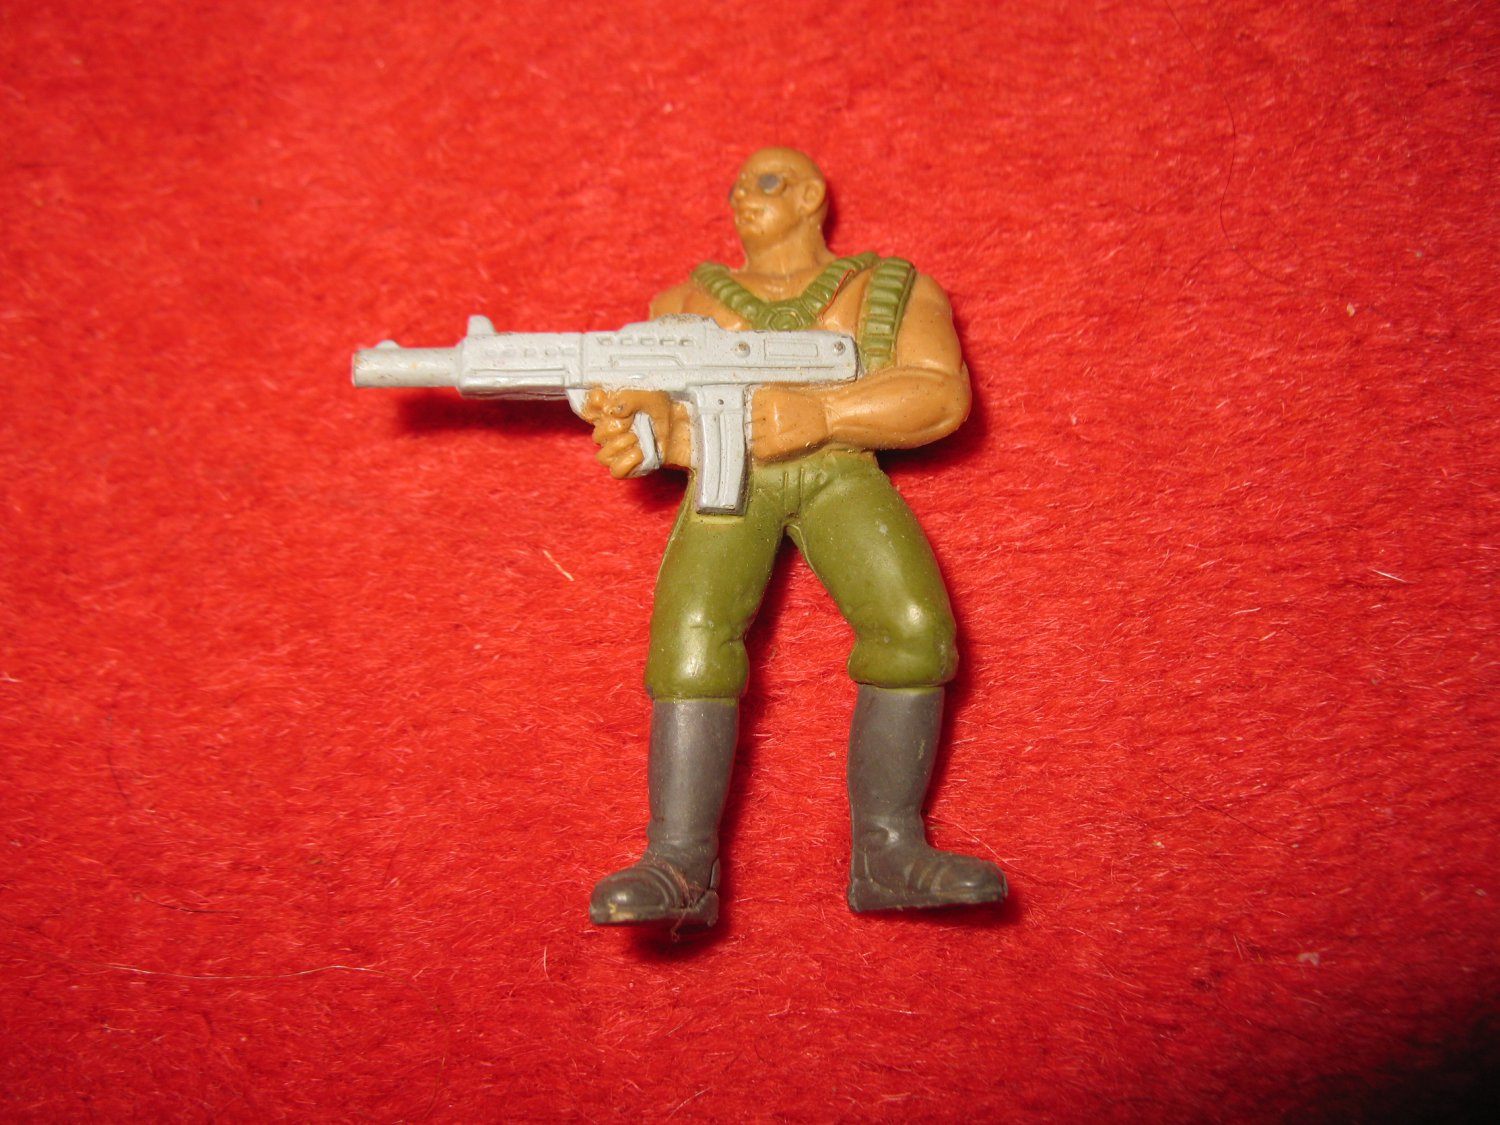 1986 GUTS Action Figure: A19 Machine Gunner